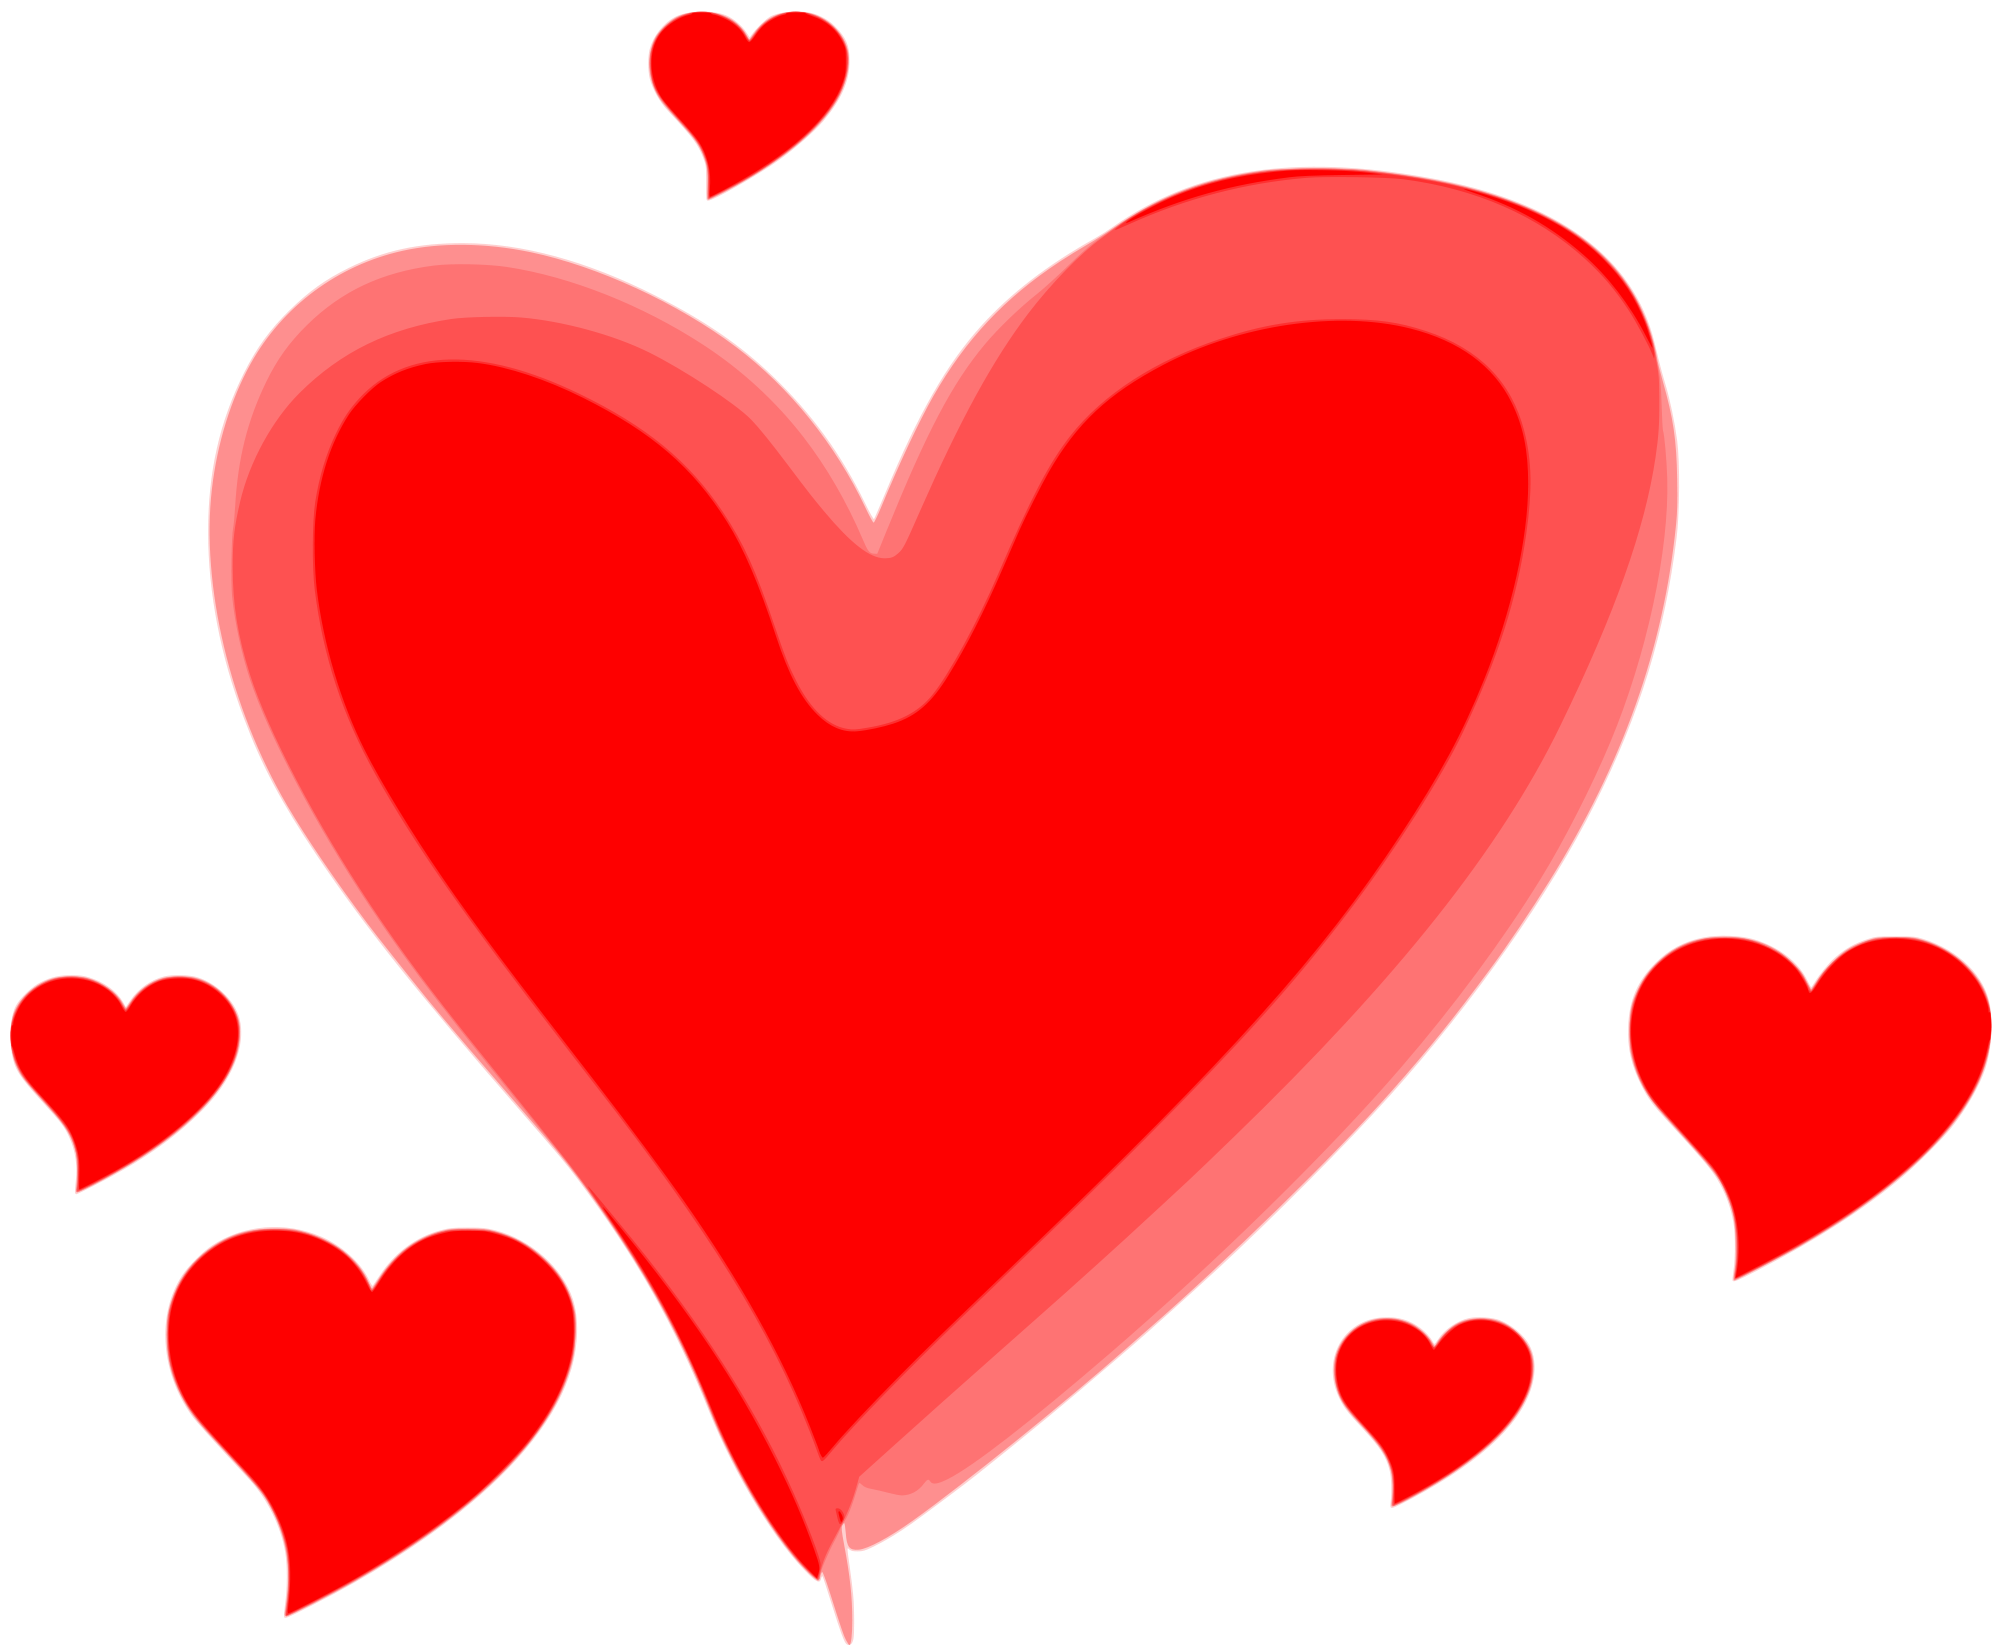 Triple heart clipart clipart free download 19 Arrowhead clipart HUGE FREEBIE! Download for PowerPoint ... clipart free download